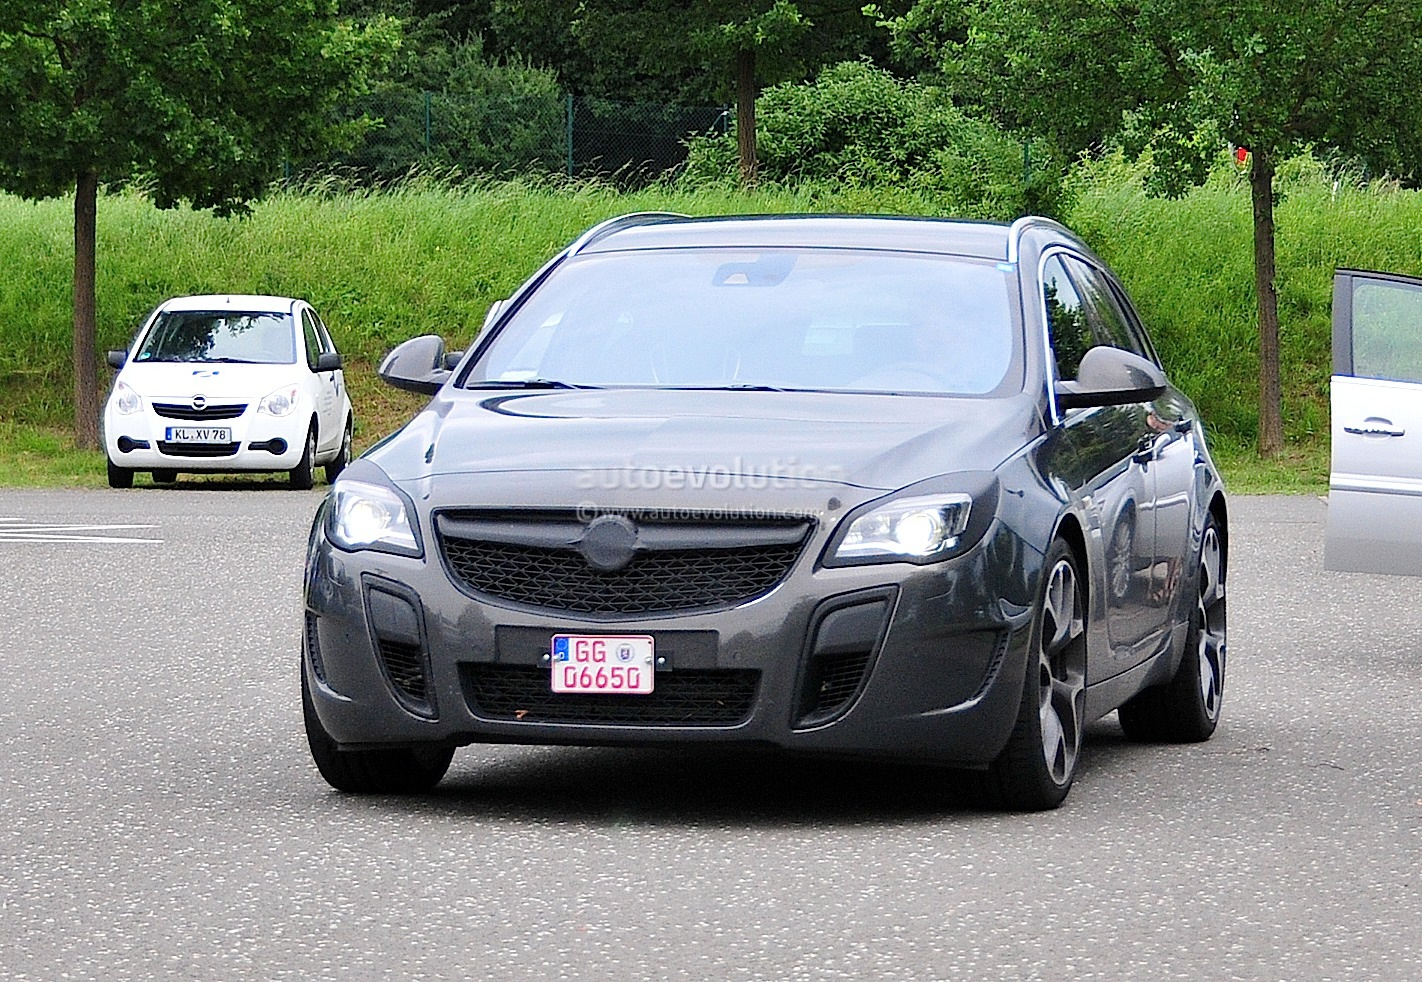 Opel insignia opc sports tourer 5 at 2010 opel insignia opc sports - Opel Insignia Opc Sports Tourer Opel Insignia Opc Sports Tourer